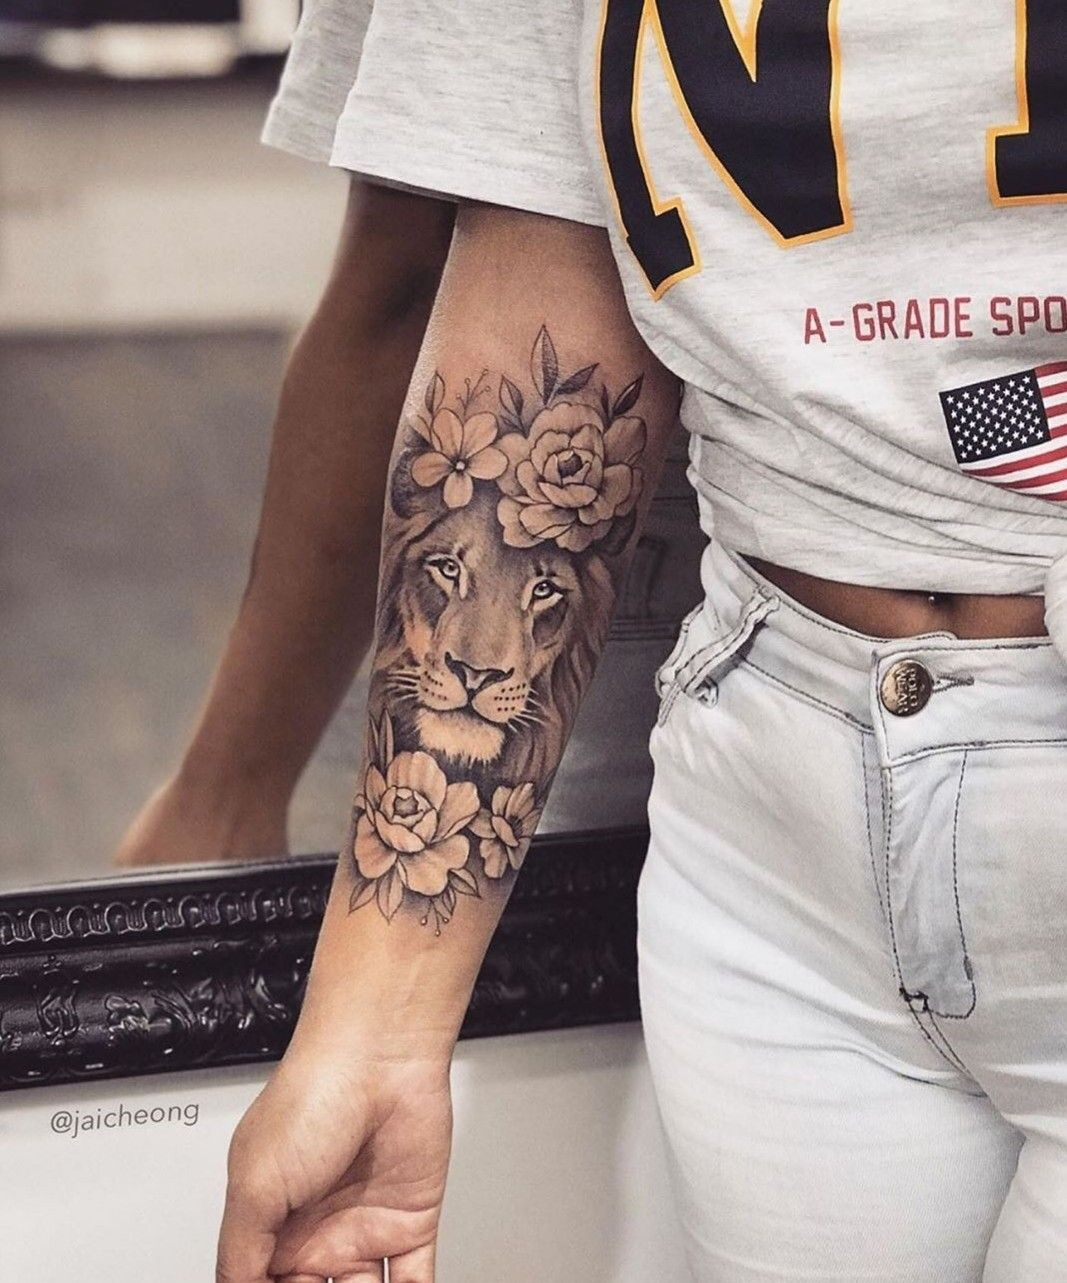 Pin by Nicole Hapunkt on ink | Sleeve tattoos for women